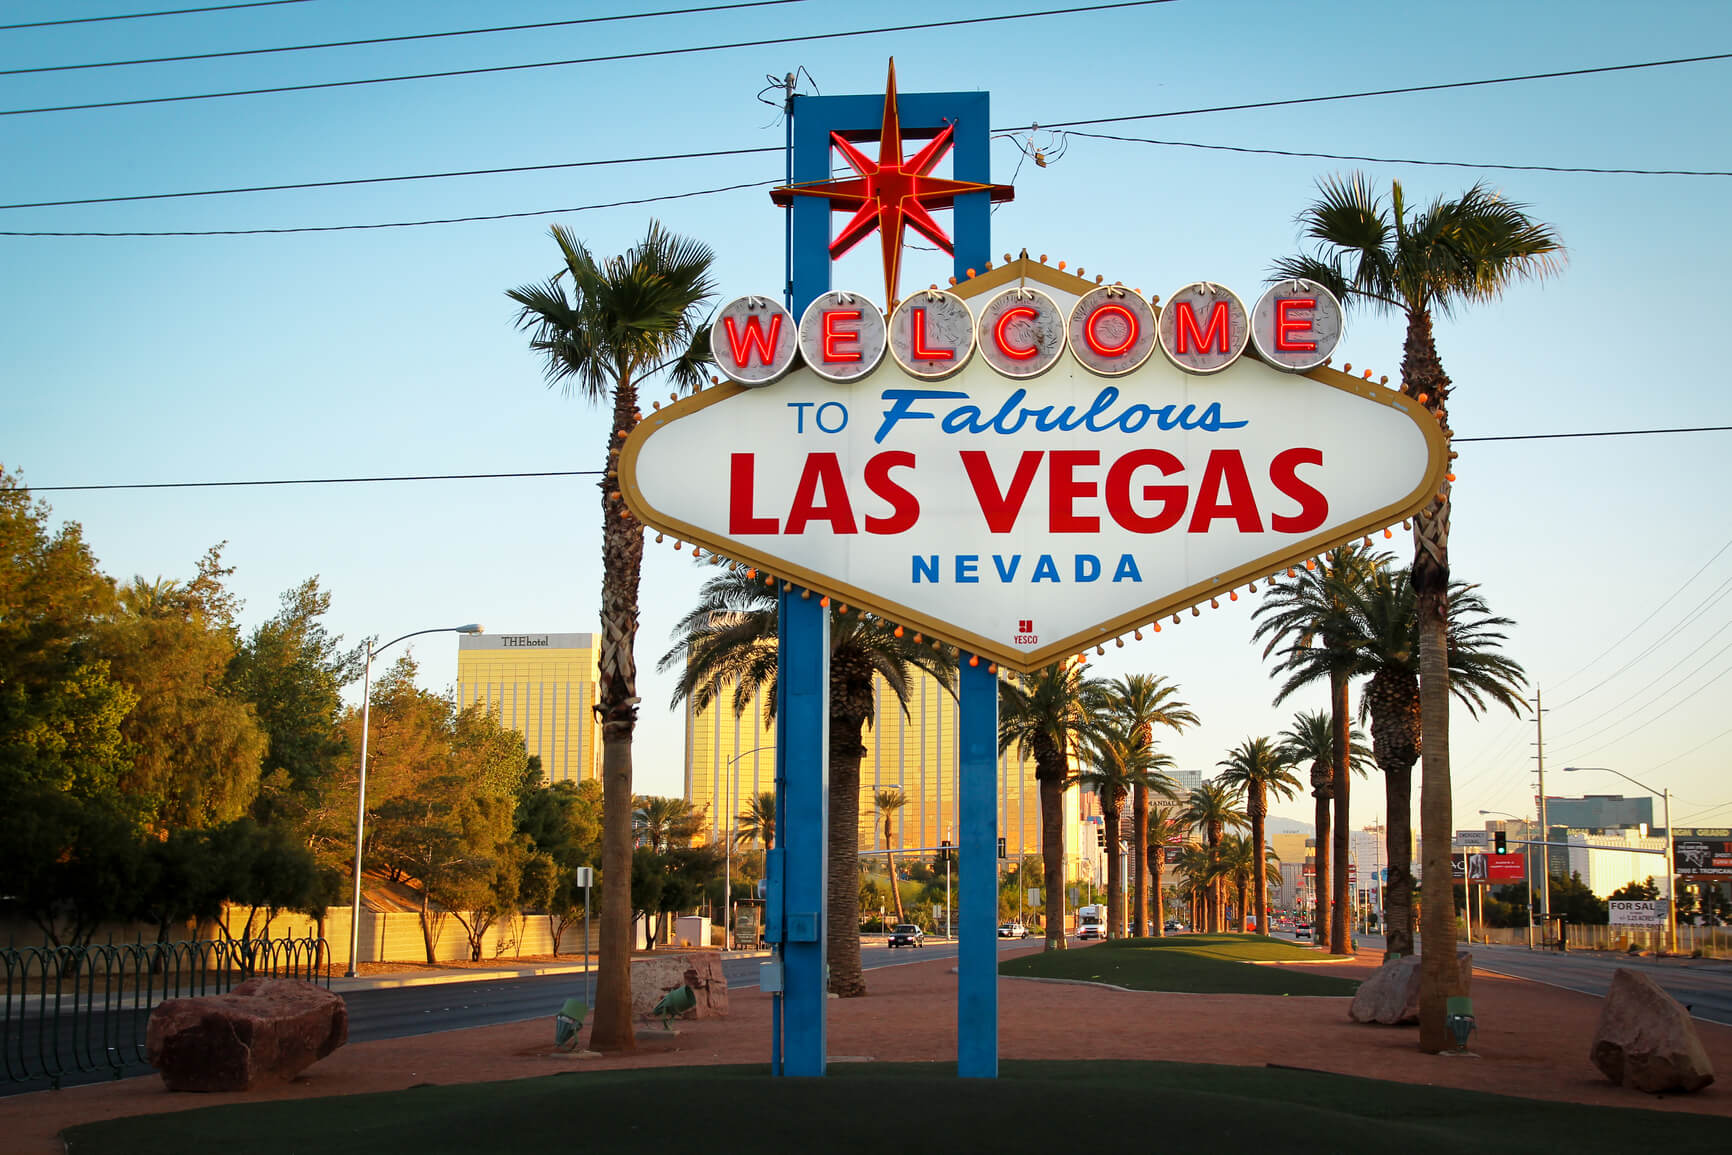 HOT!! SUMMER: Non-stop from Charlotte, North Carolina to Las Vegas (& vice versa) for only $58 roundtrip (Jul-Nov dates)